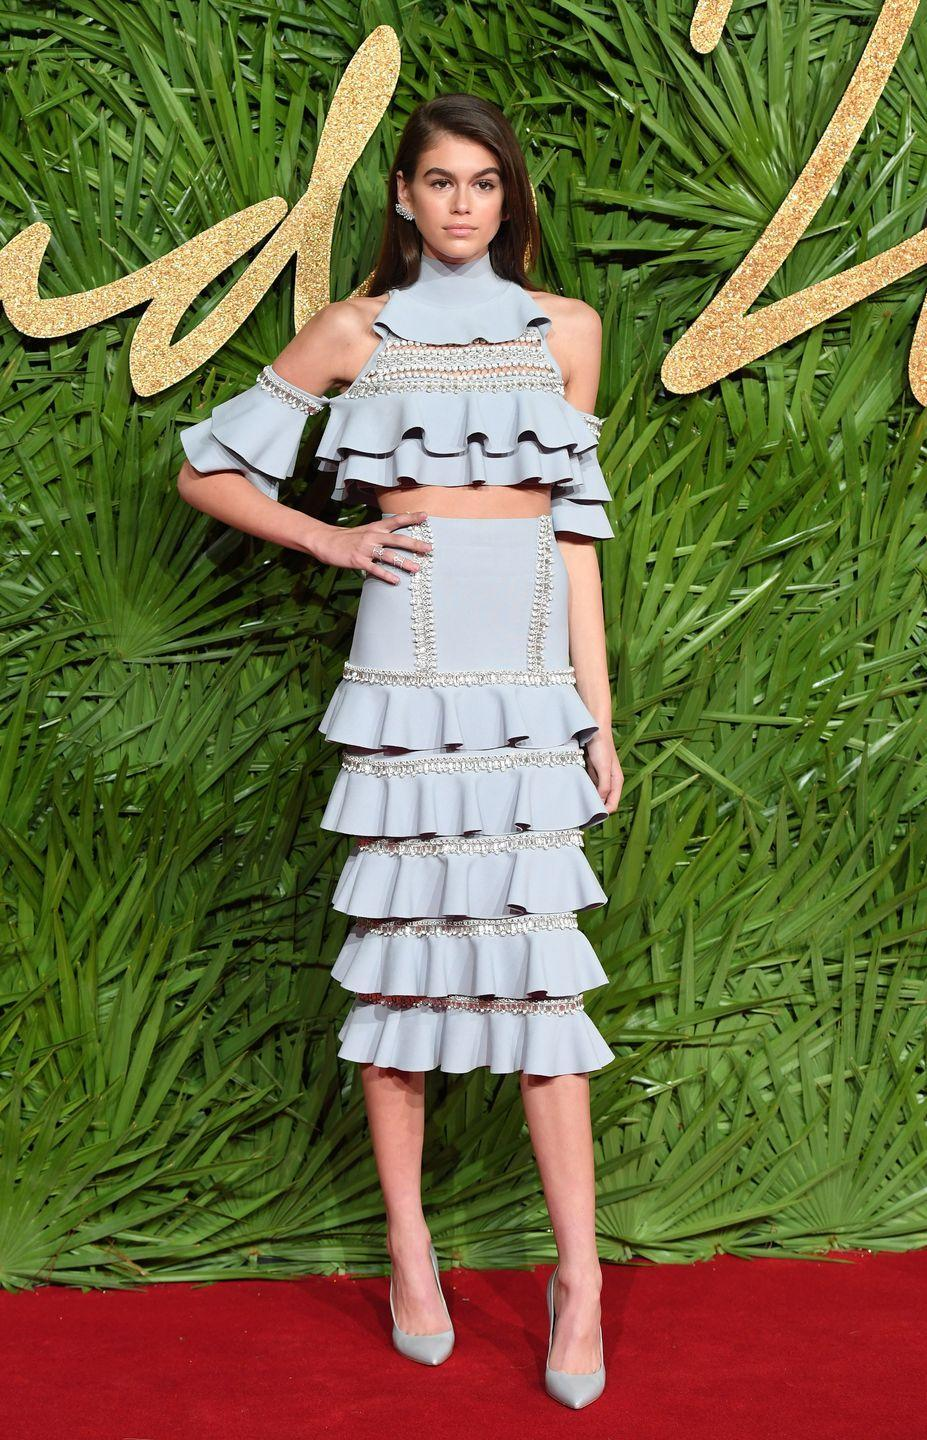 <p>Kaia Gerber attends the Fashion Awards 2017 In Partnership With Swarovski wearing a pearl-embellished blue frill two-piece by Ralph & Russo</p>